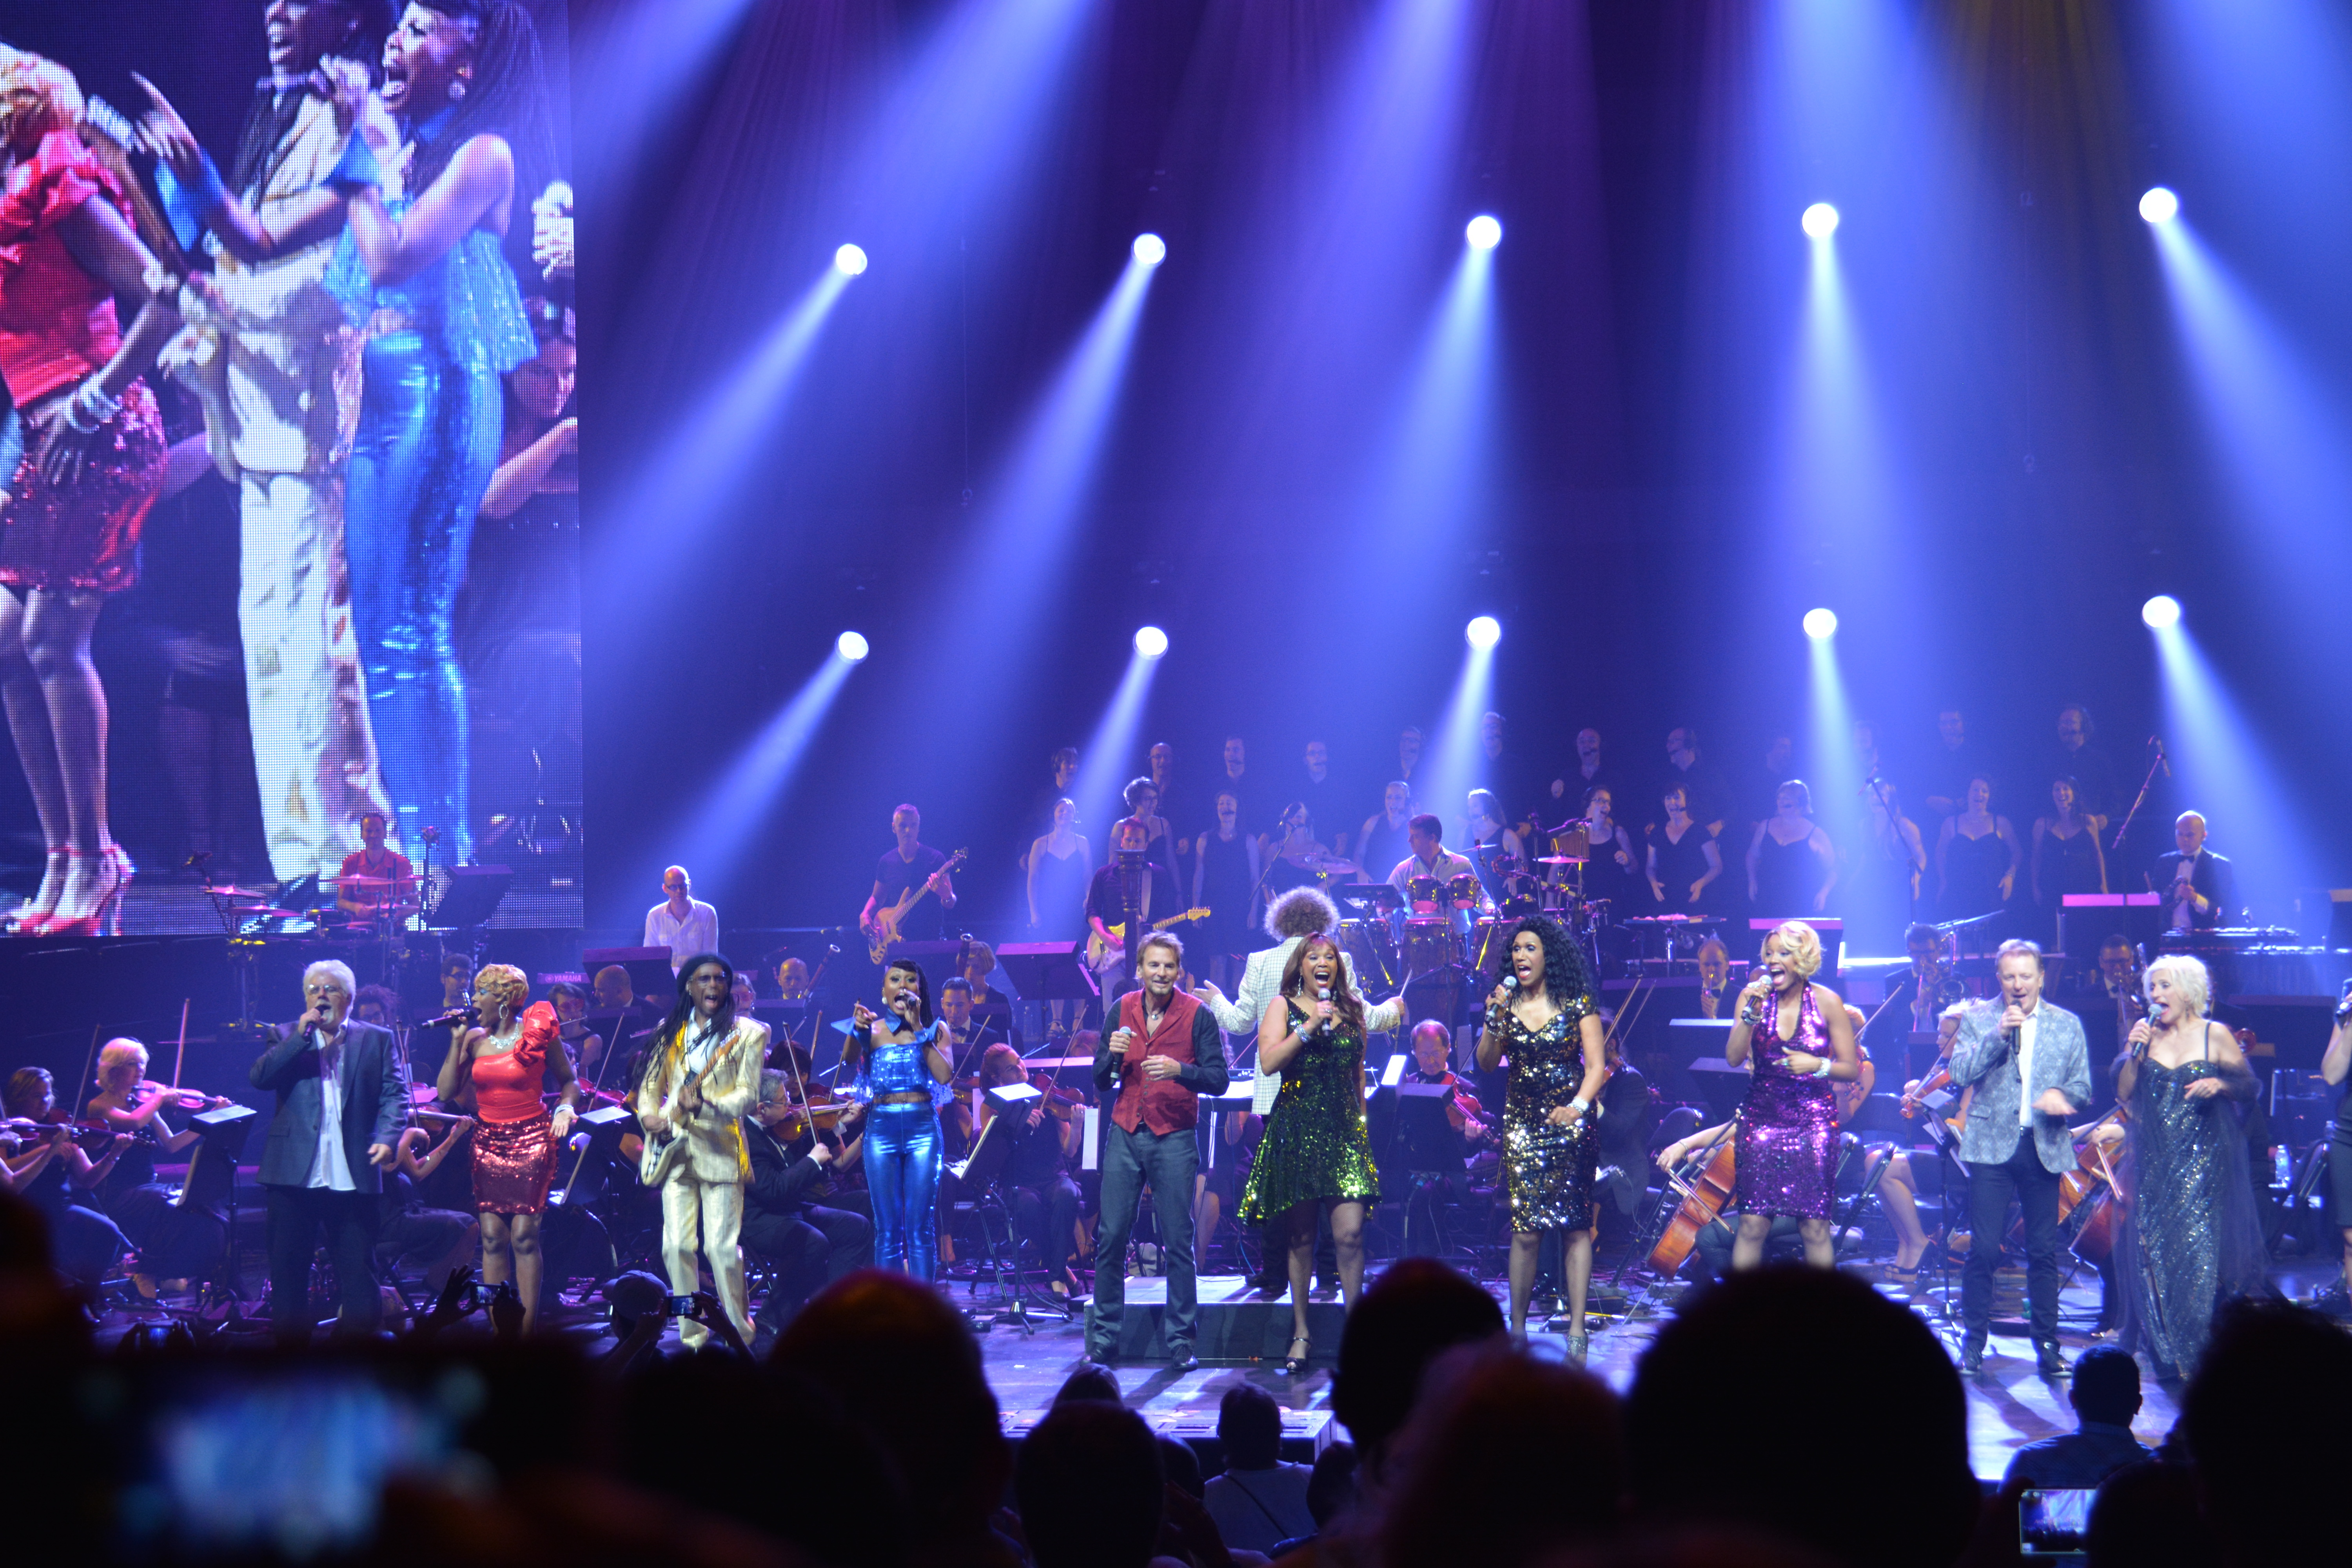 Europe's hottest ticket for three decades, Night of the Proms, brought its one-of-a-kind classic-meets-pop stage extravaganza to a limited four-city American Tour and astounded both critics and audiences alike. So embraced was this first foray onto U.S. soil, that a 20-city U.S. tour is now being prepped for 2015. (Photo: Business Wire)